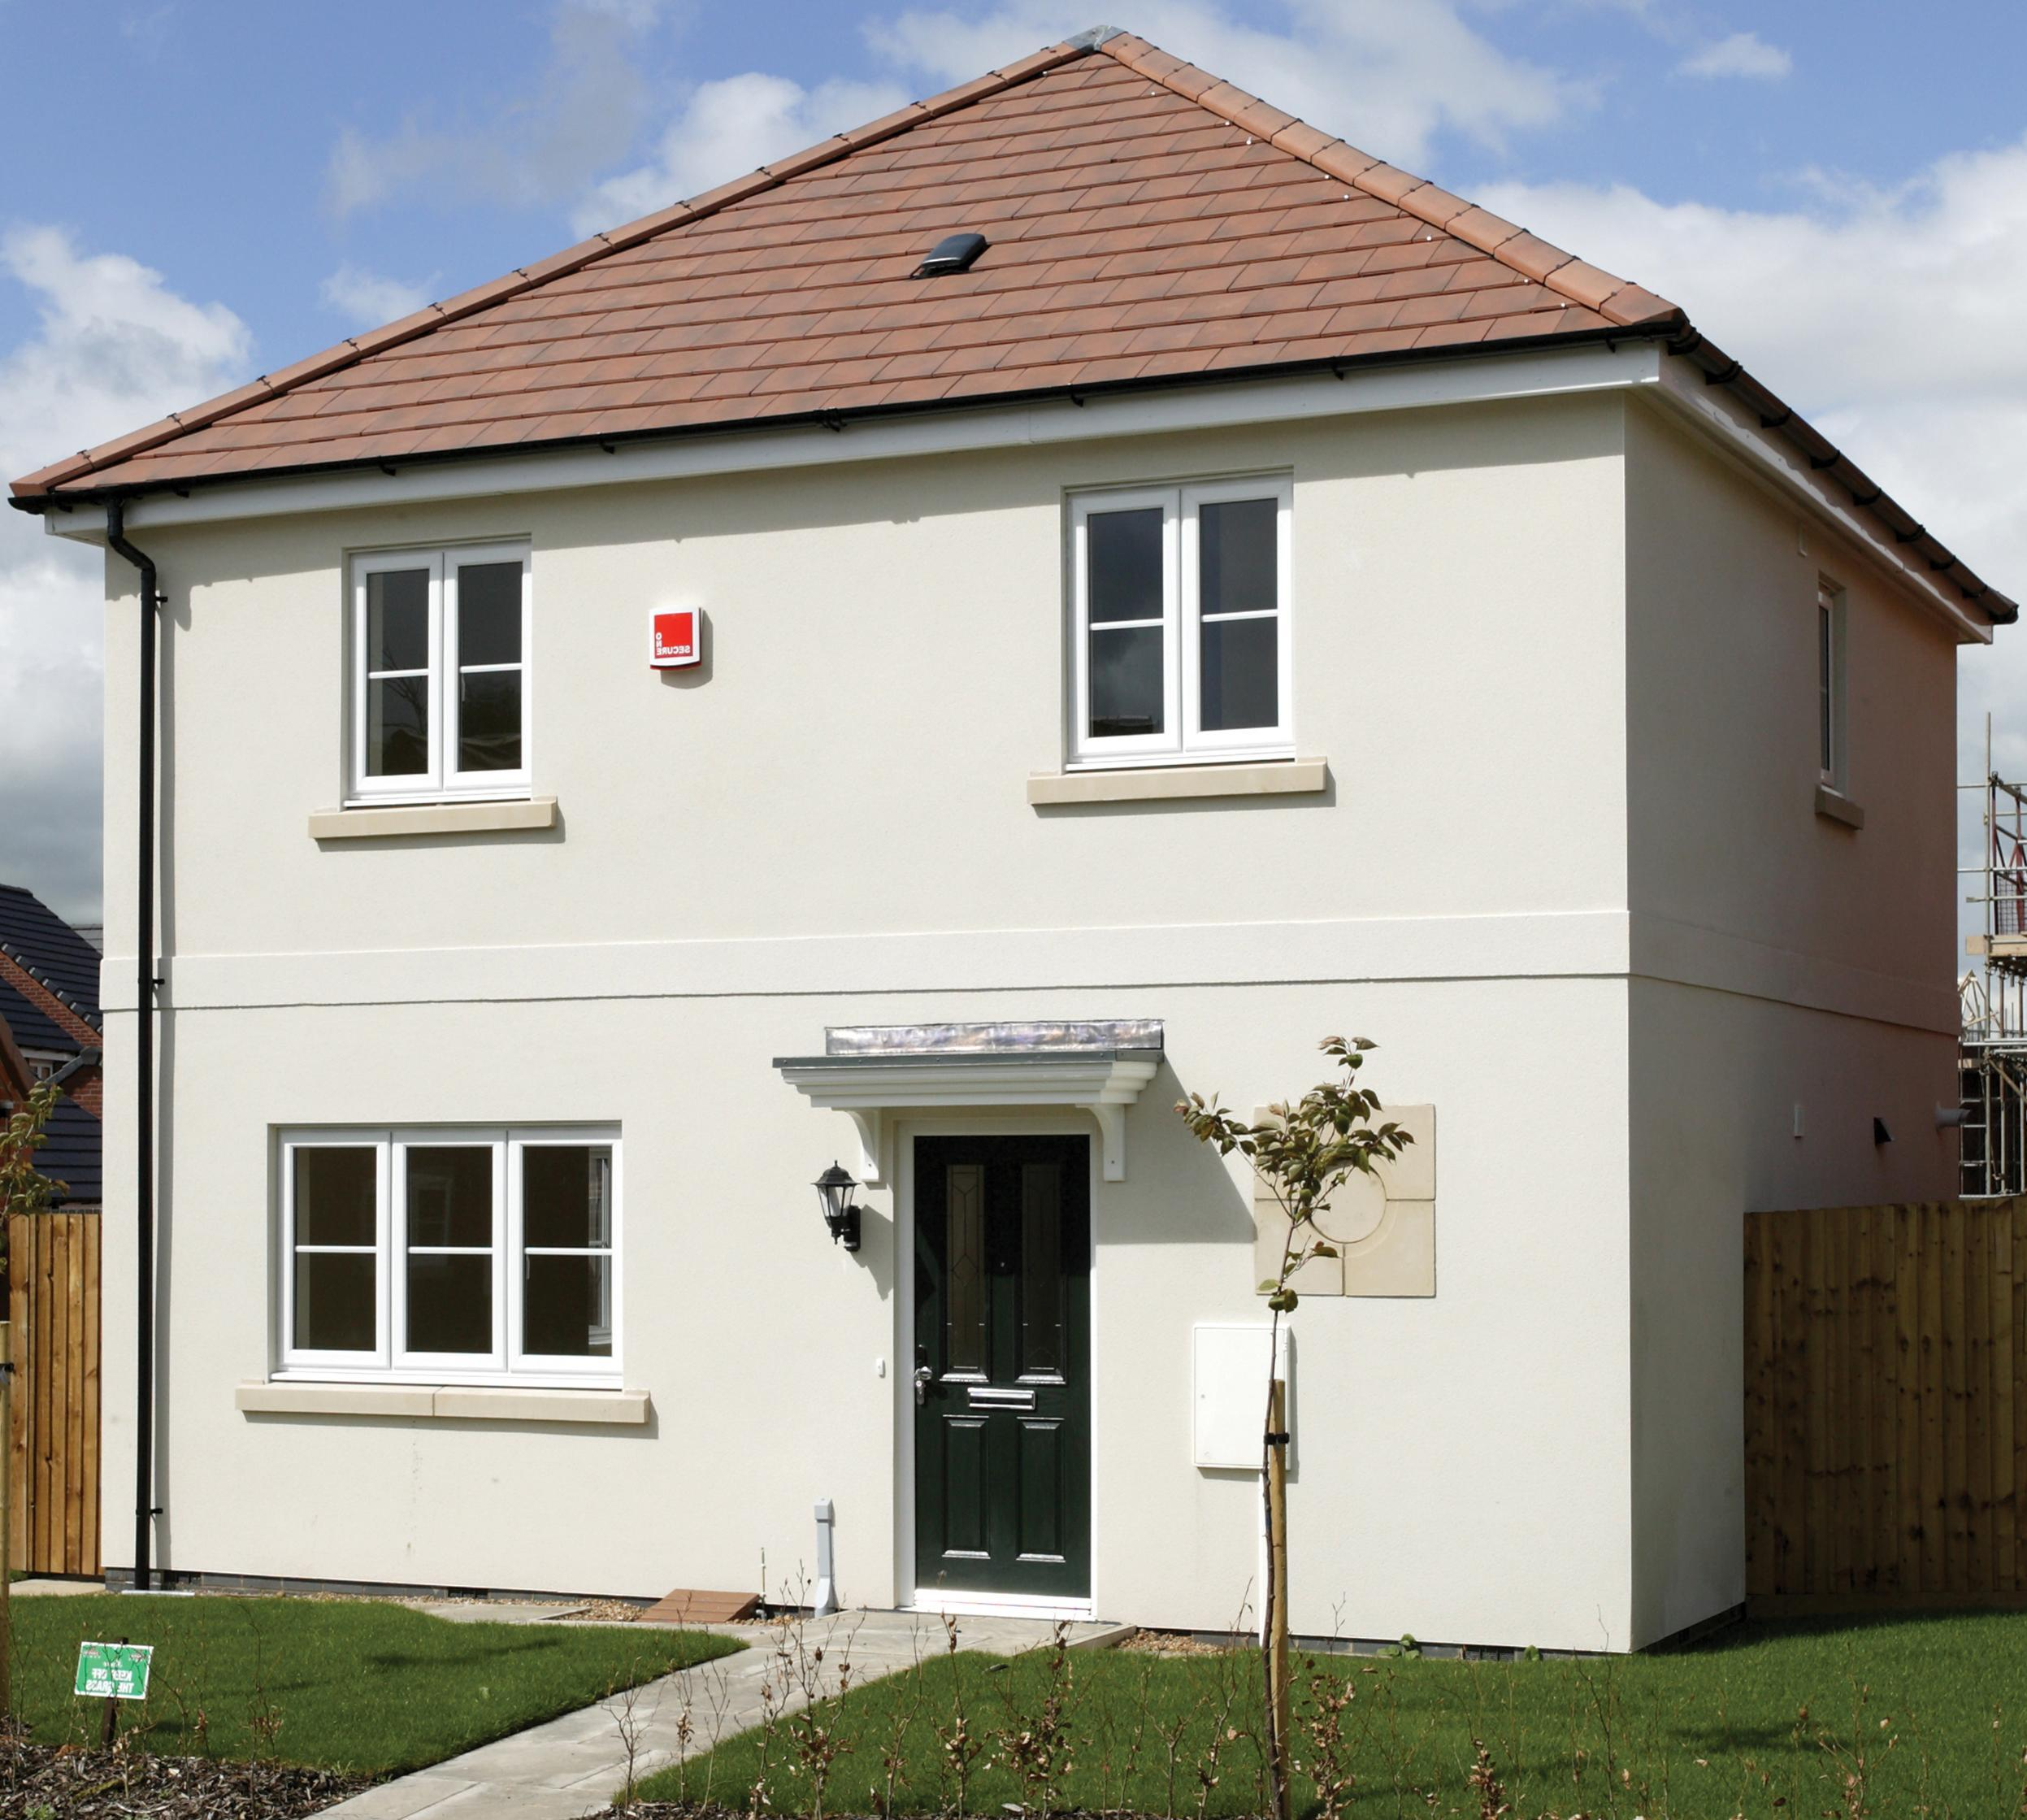 272950 3 Bedroom Detached House For Sale In Off Hallam Fields Road Full Brick Brand New Home On Wiring To Garage Birstall Smartnewhomes